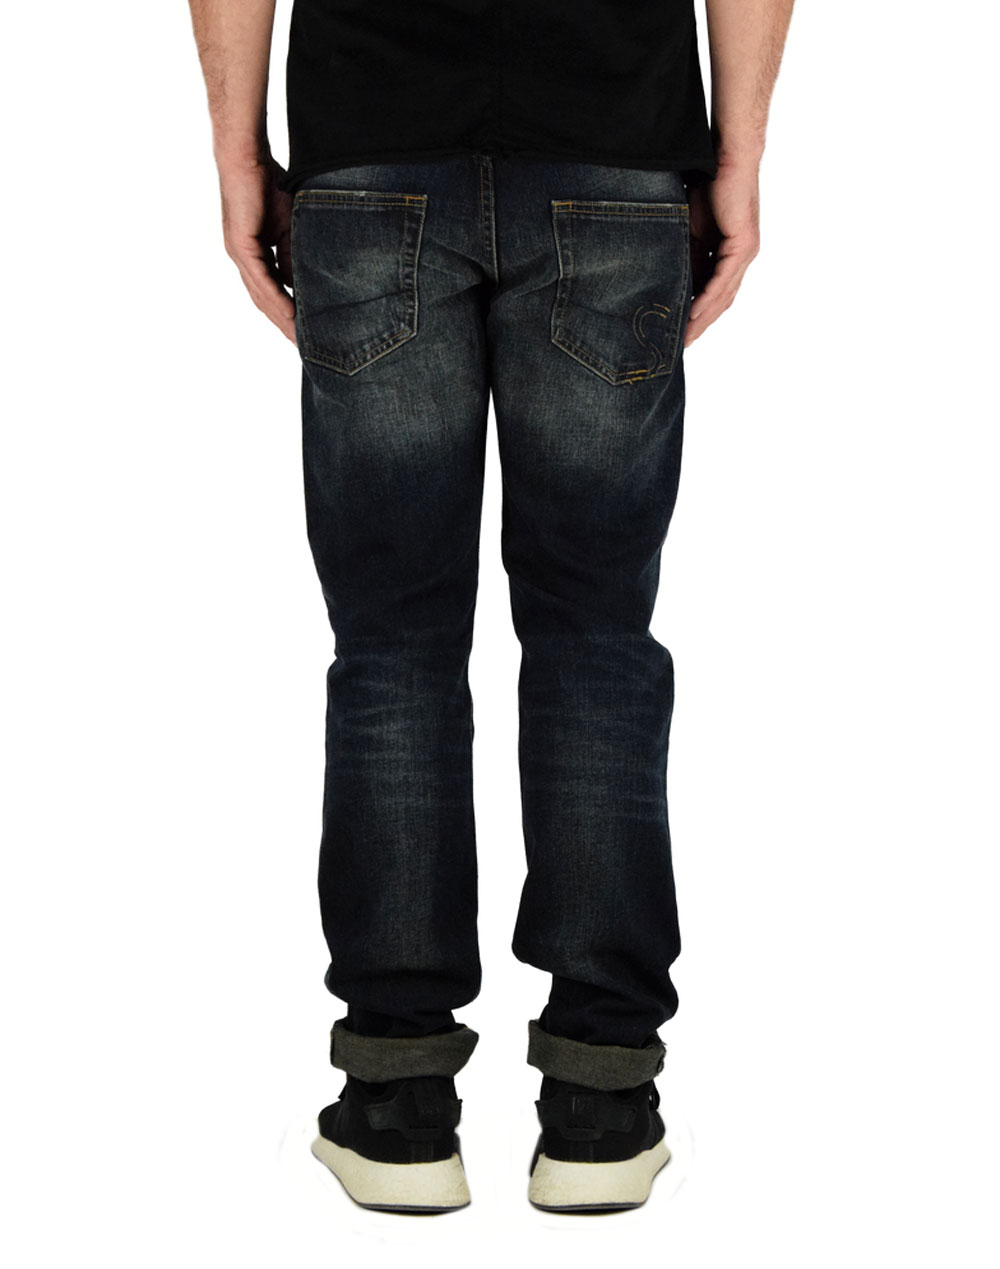 Staff Hardy Blue Denim (5-859.125.B1.034)